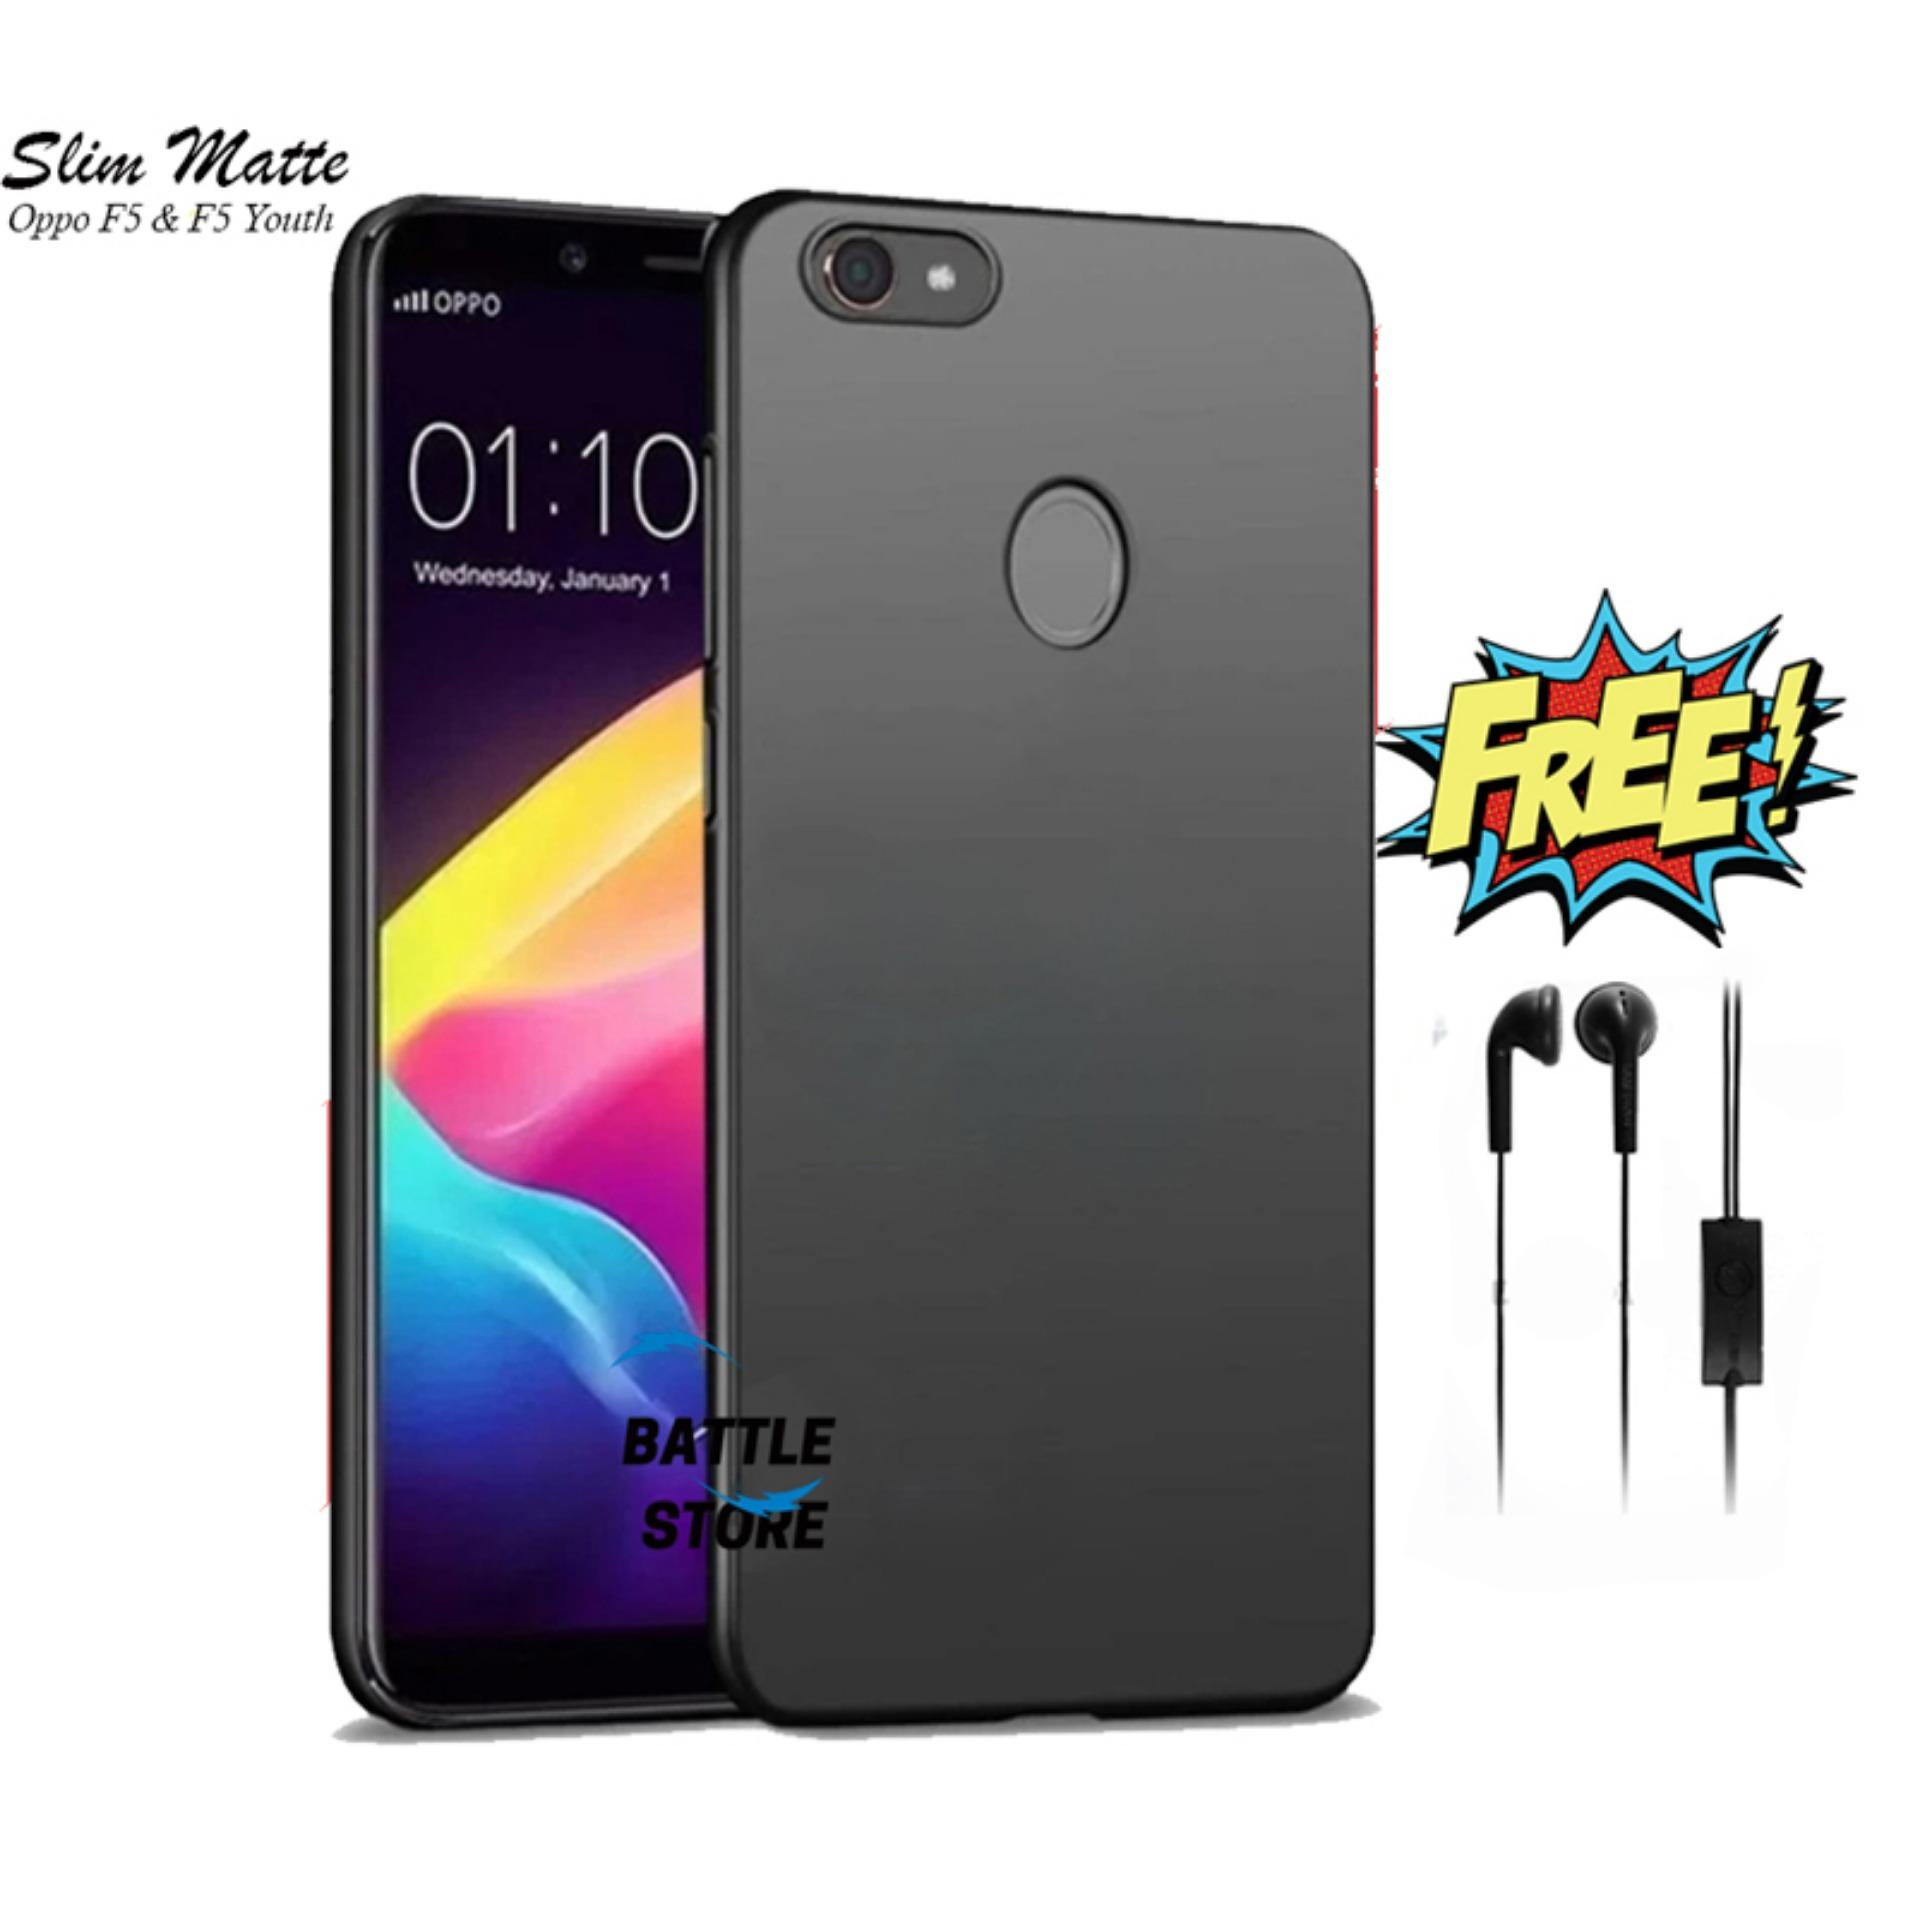 Case Slim Black Matte Oppo F5 F5 Youth Baby Skin Softcase Ultra Thin Jelly Silikon